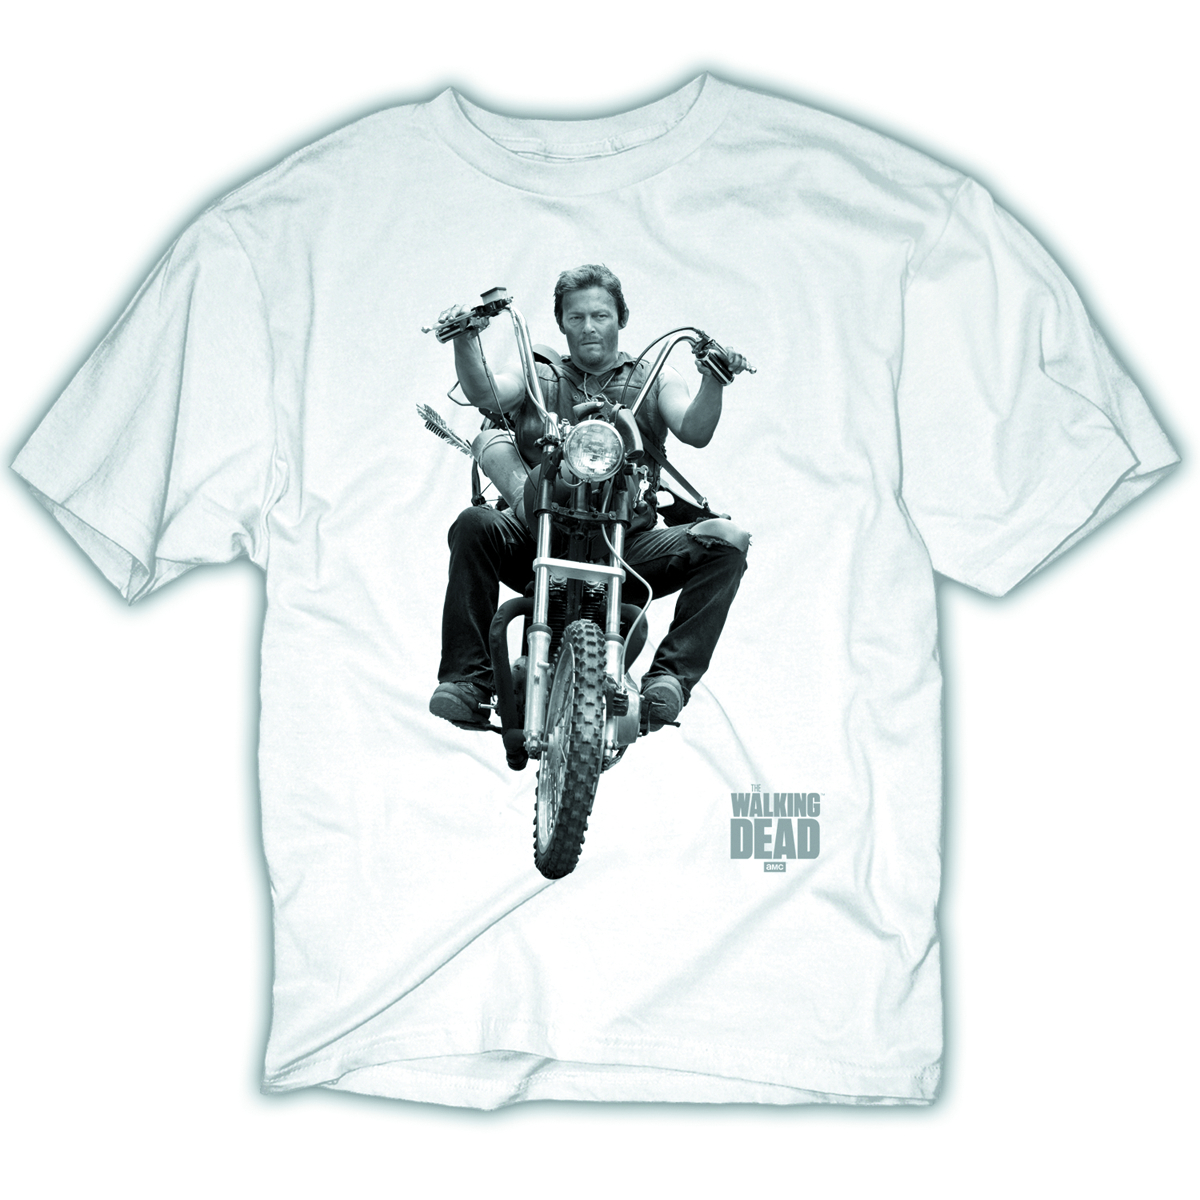 WALKING DEAD DARYL BIKE BLK T/S MED